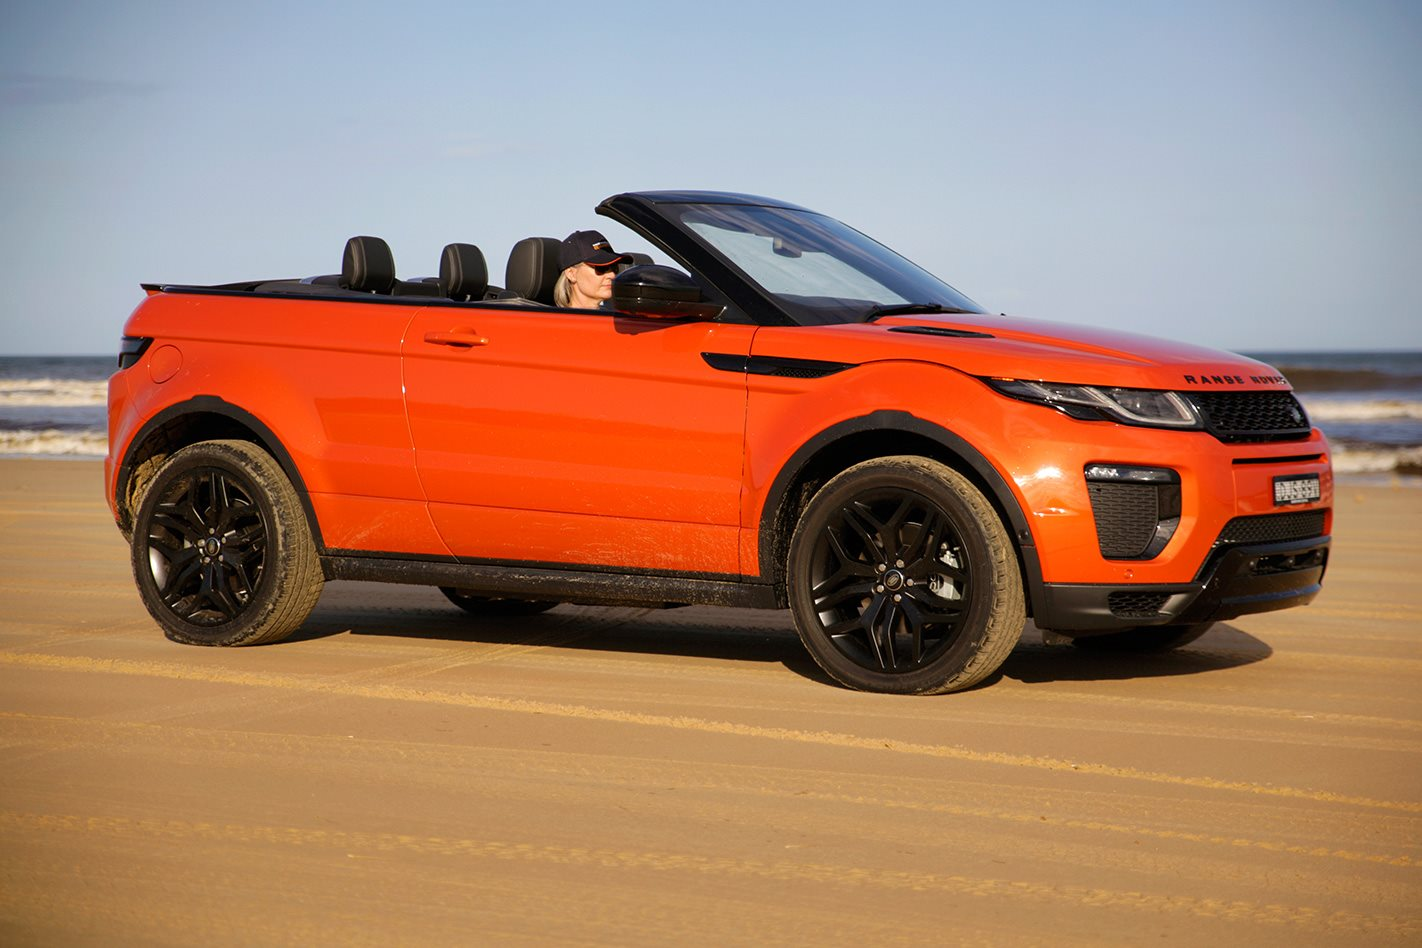 2017 range rover evoque convertible review wheels. Black Bedroom Furniture Sets. Home Design Ideas